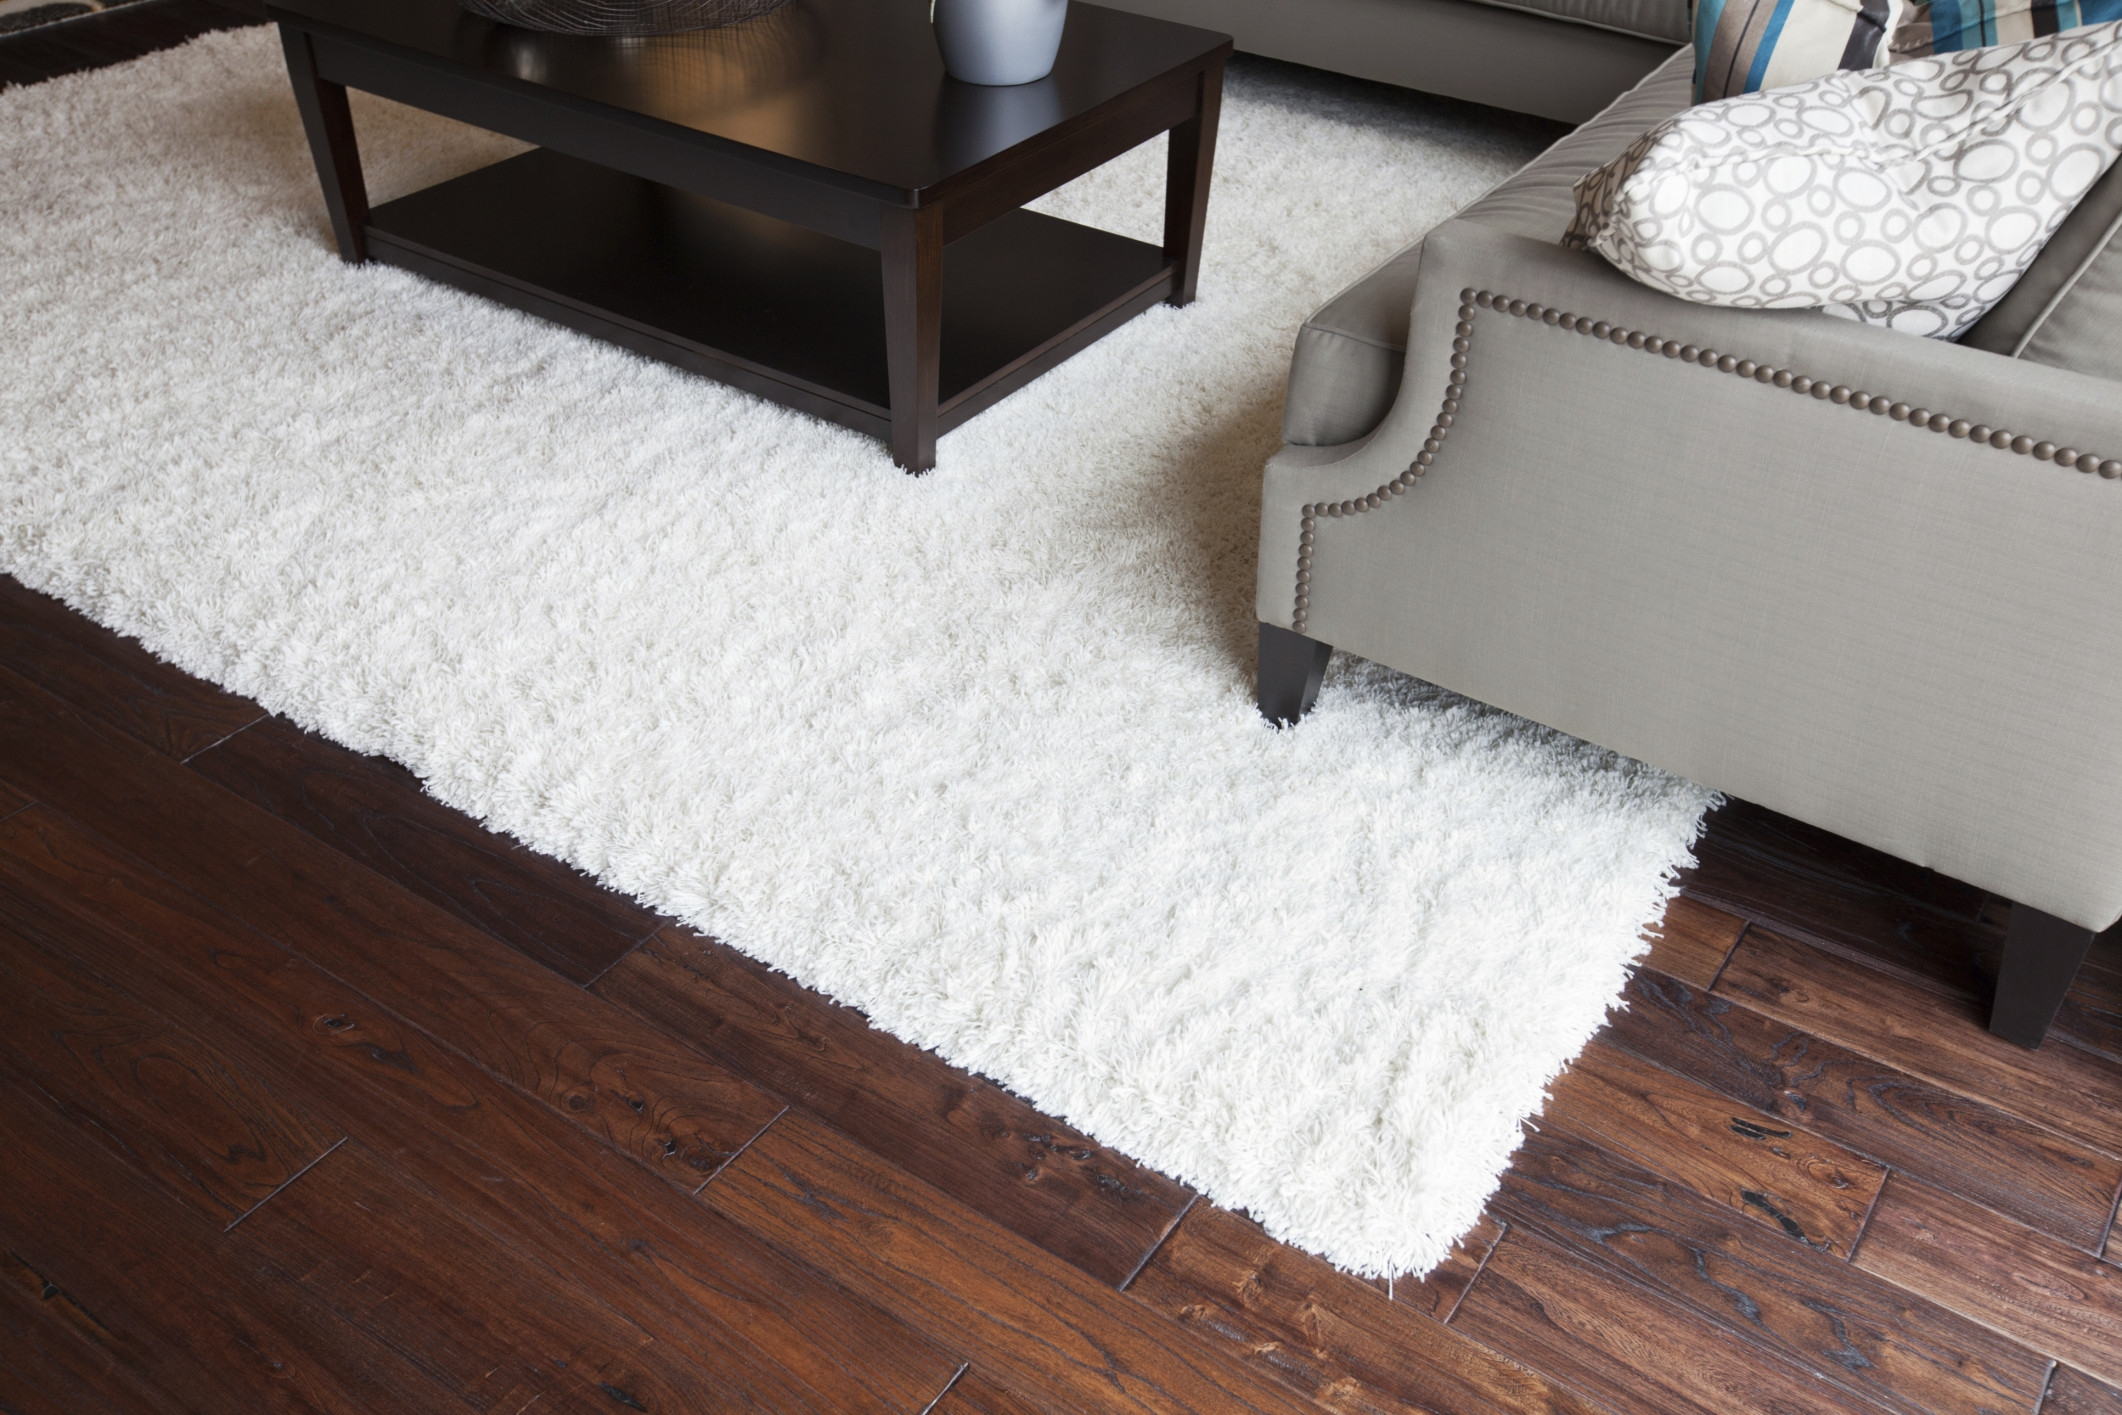 Best Pad For Area Rugs On Wood Floors